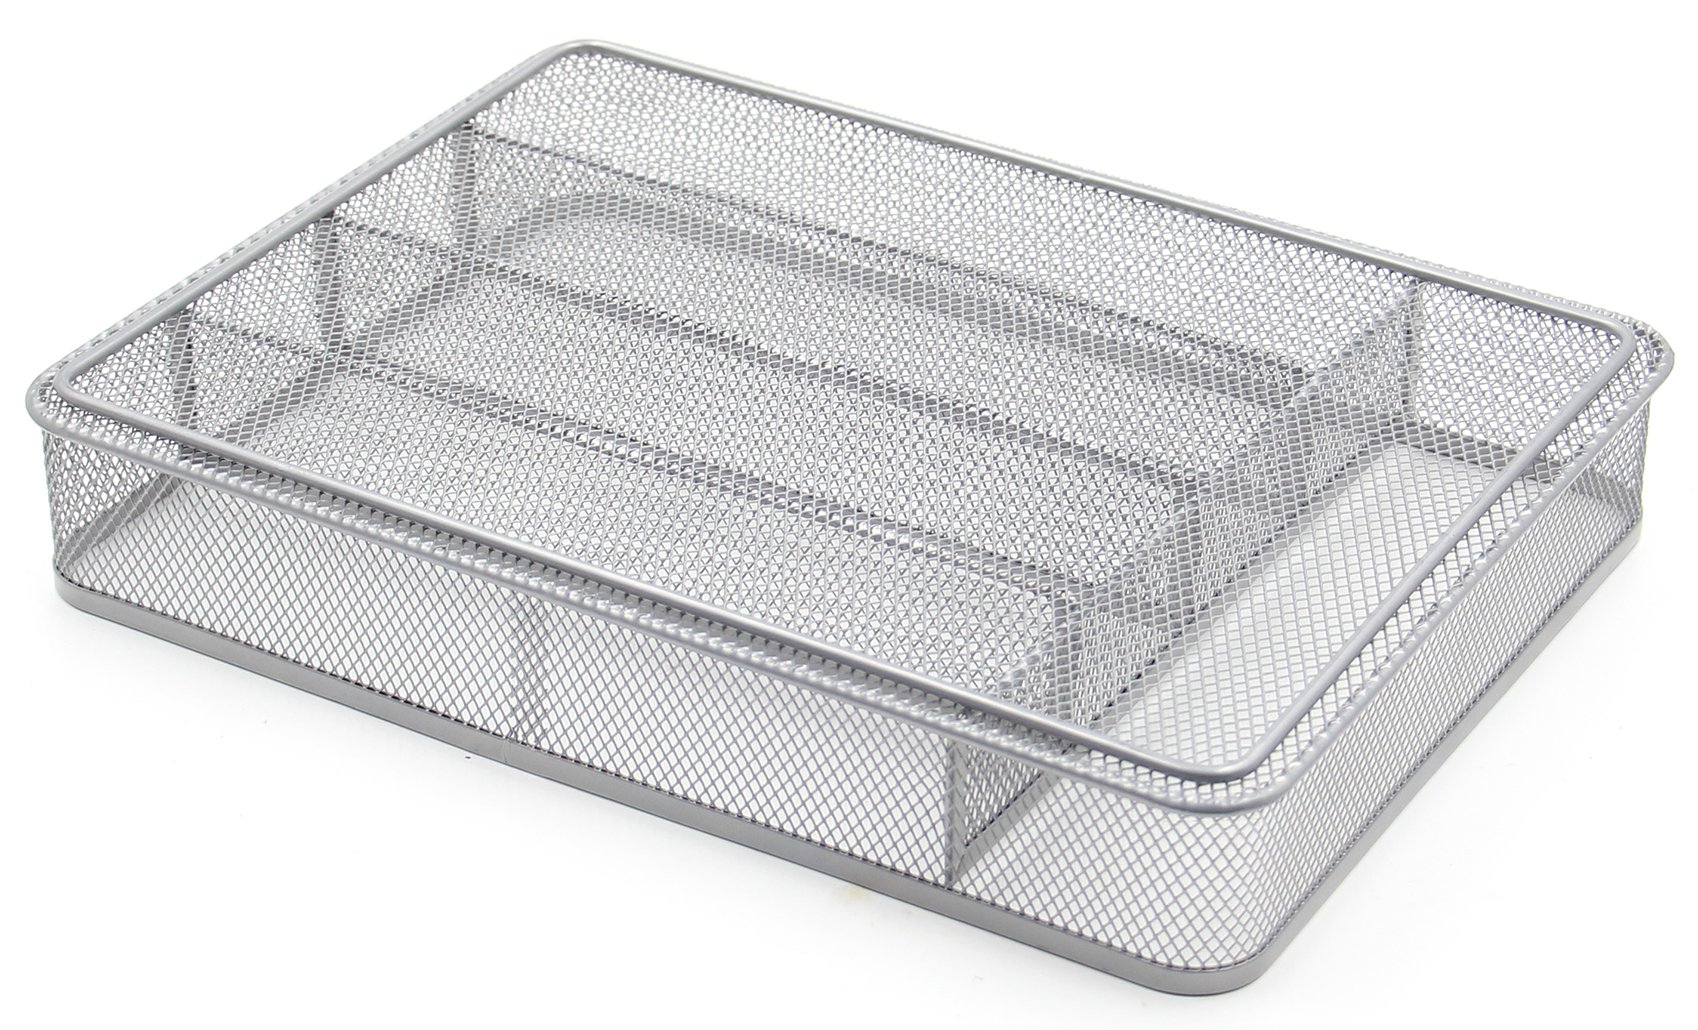 ESYLIFE 5 Compartment Mesh Kitchen Cutlery Trays Silverware Storage Kitchen Utensil Flatware Tray, Silver by Esy-Life (Image #6)